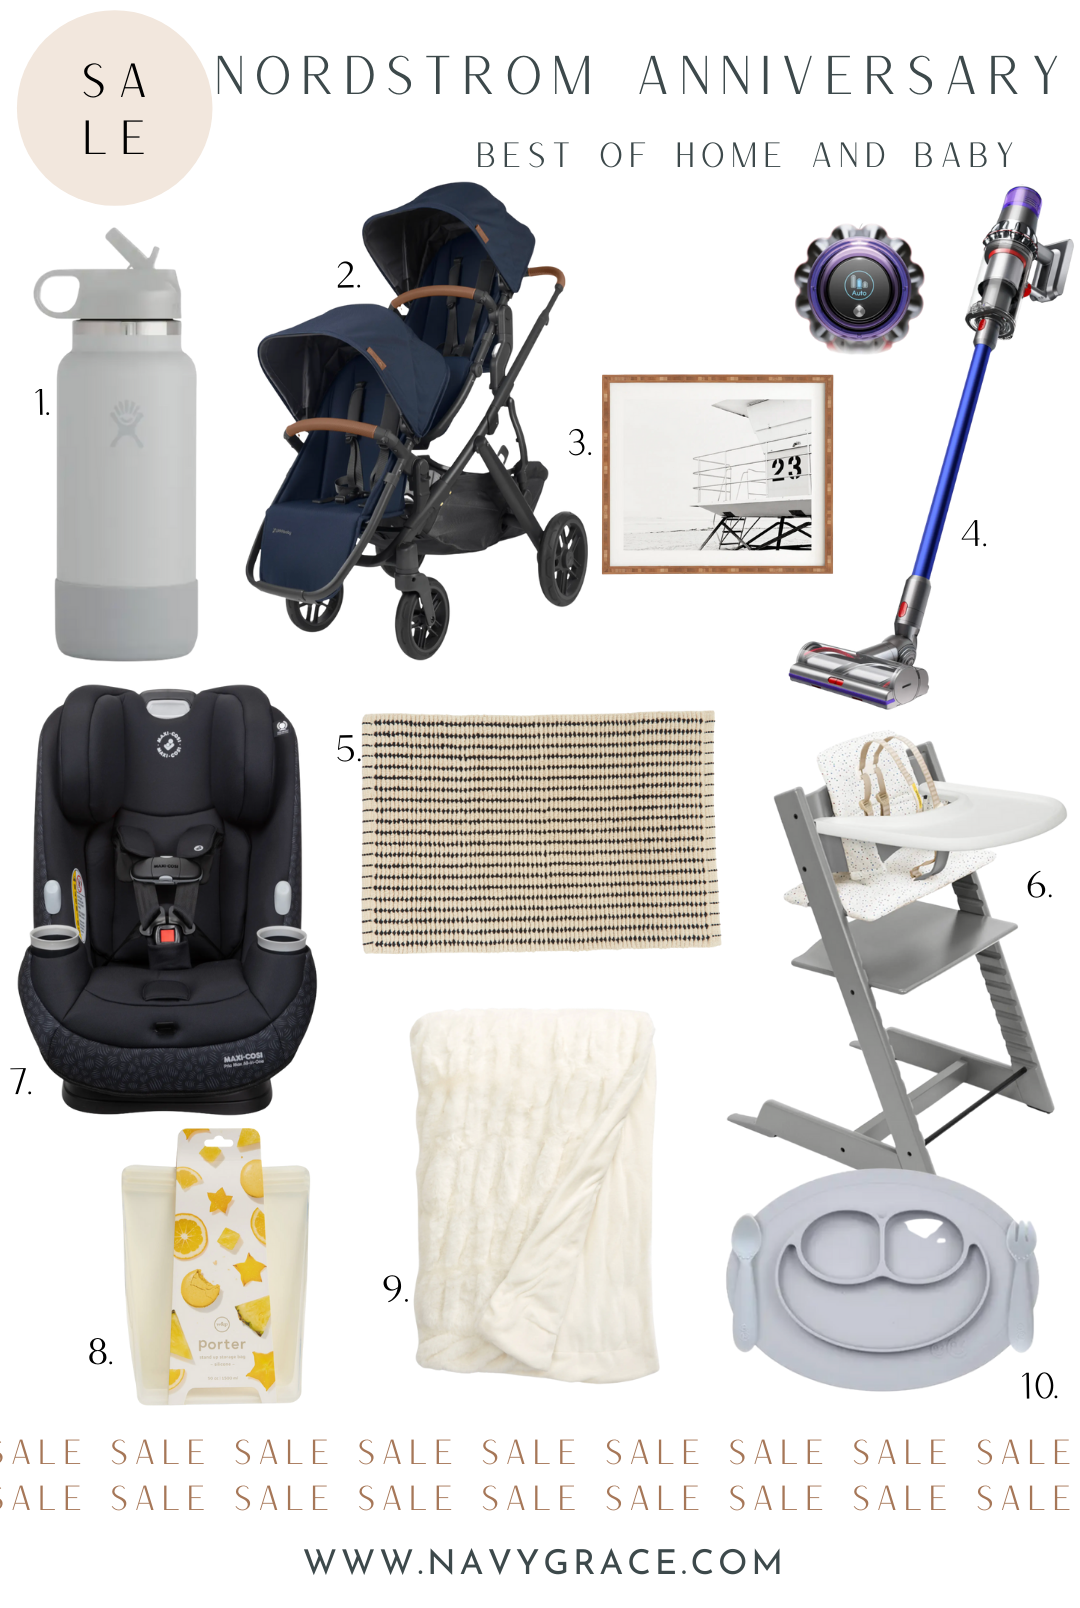 collage of home and baby items from nordstrom anniversary sale 2021